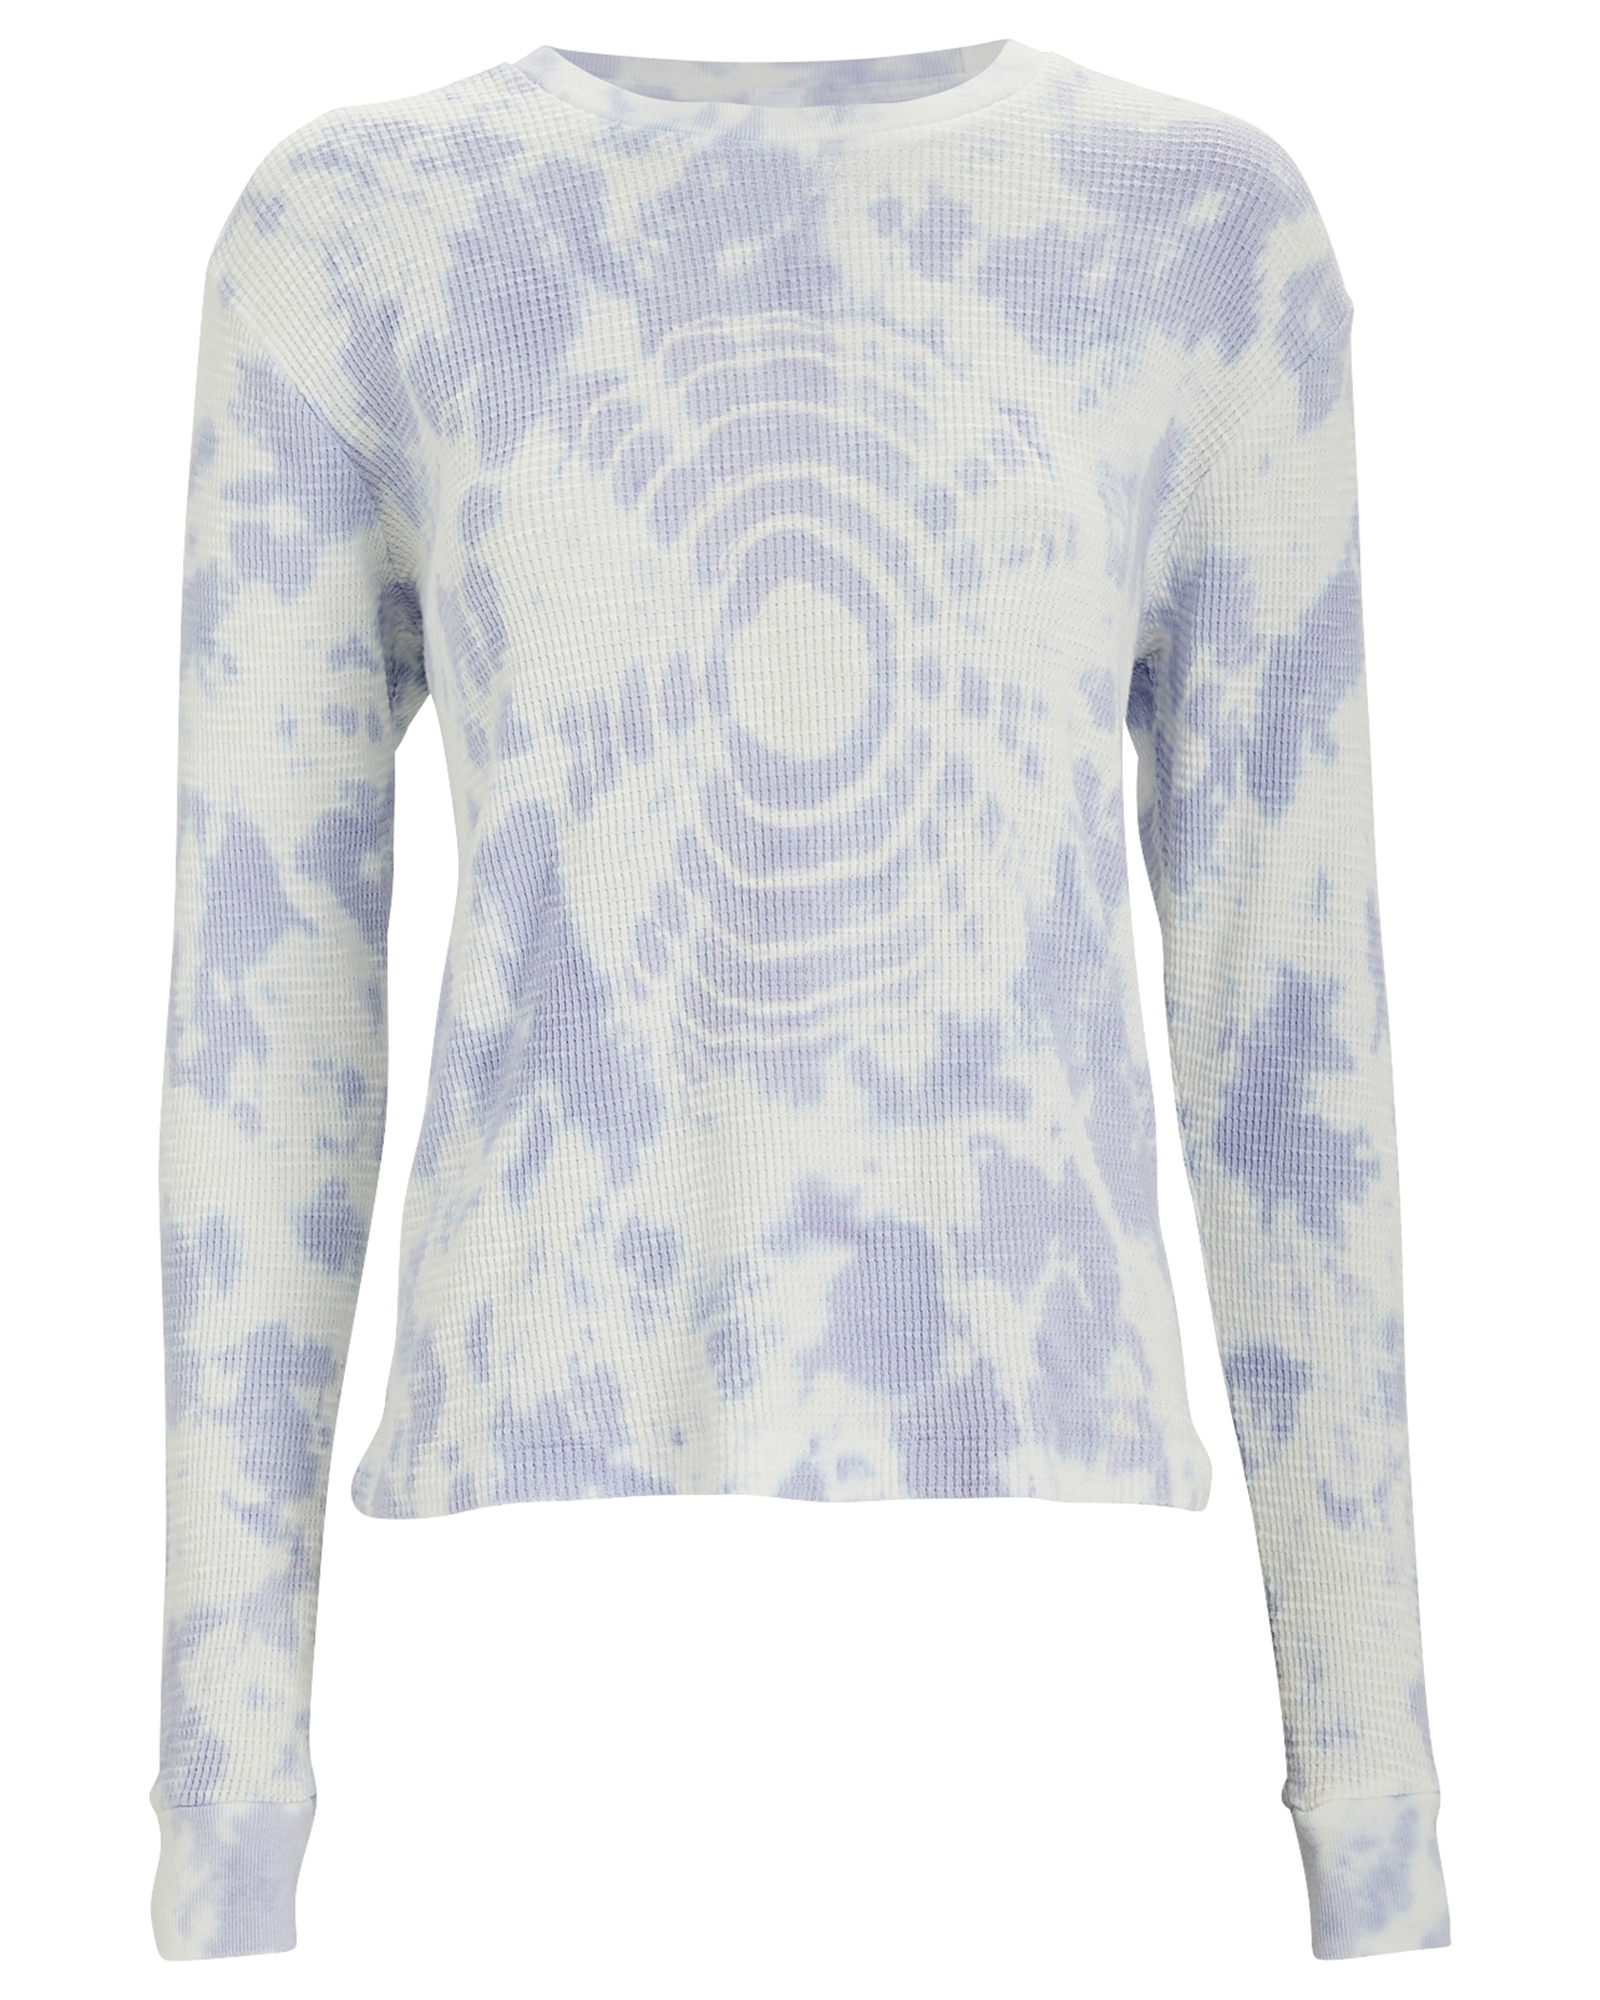 Re/done Thermal Tie-Dye Long Sleeve T-Shirt